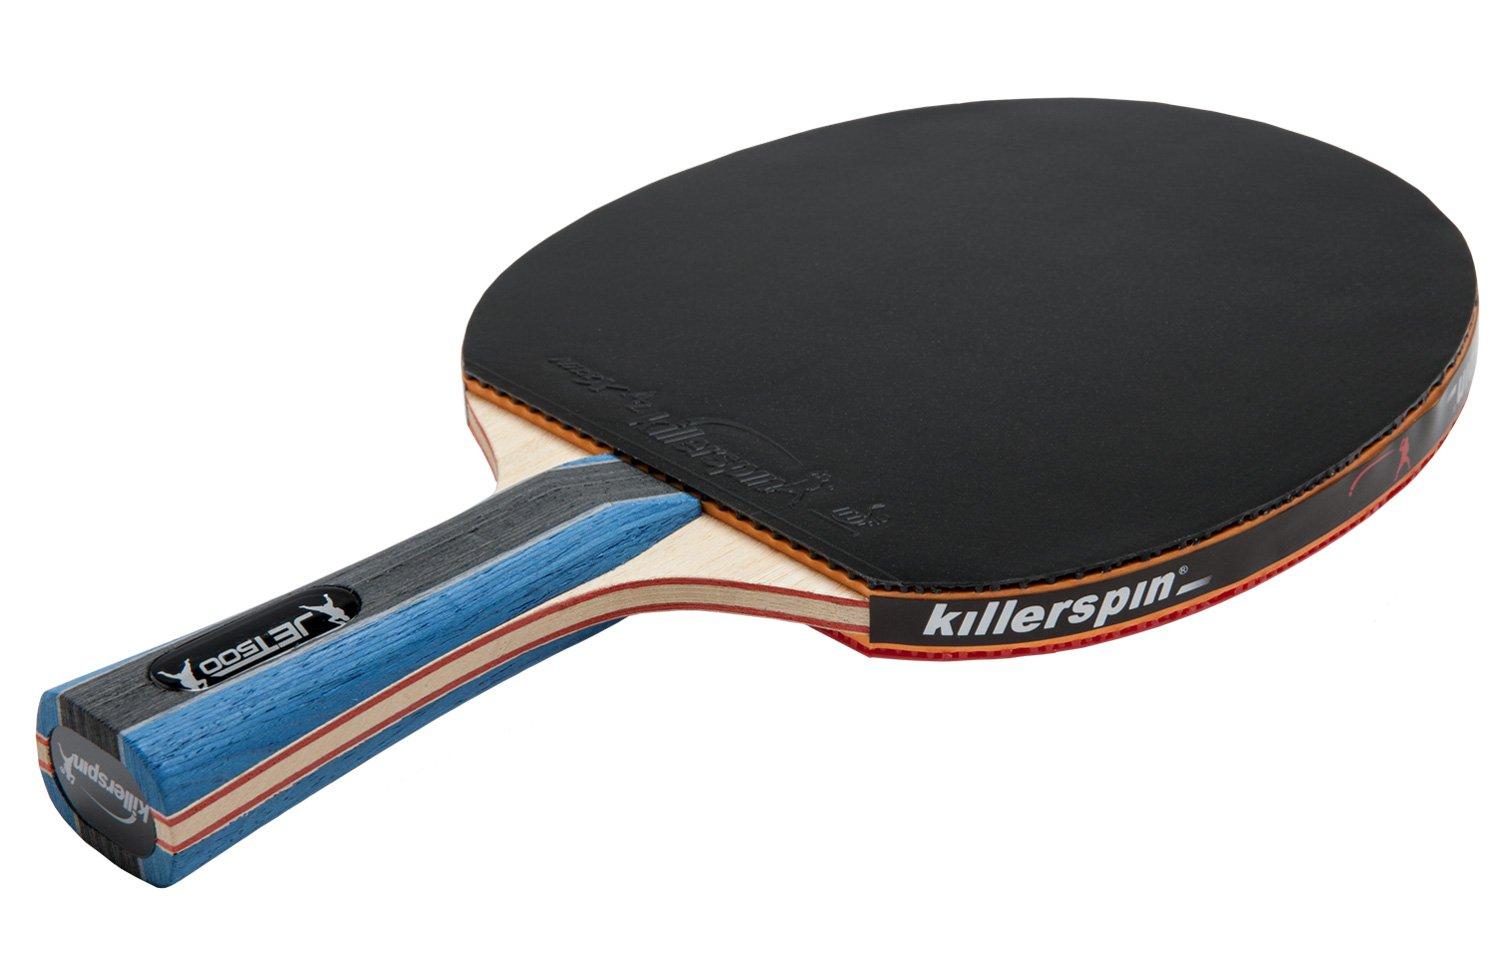 Killerspin JET500 Table Tennis Paddle – A Perfect Ping Pong Combination of Power and Finesse for Intermediate Players